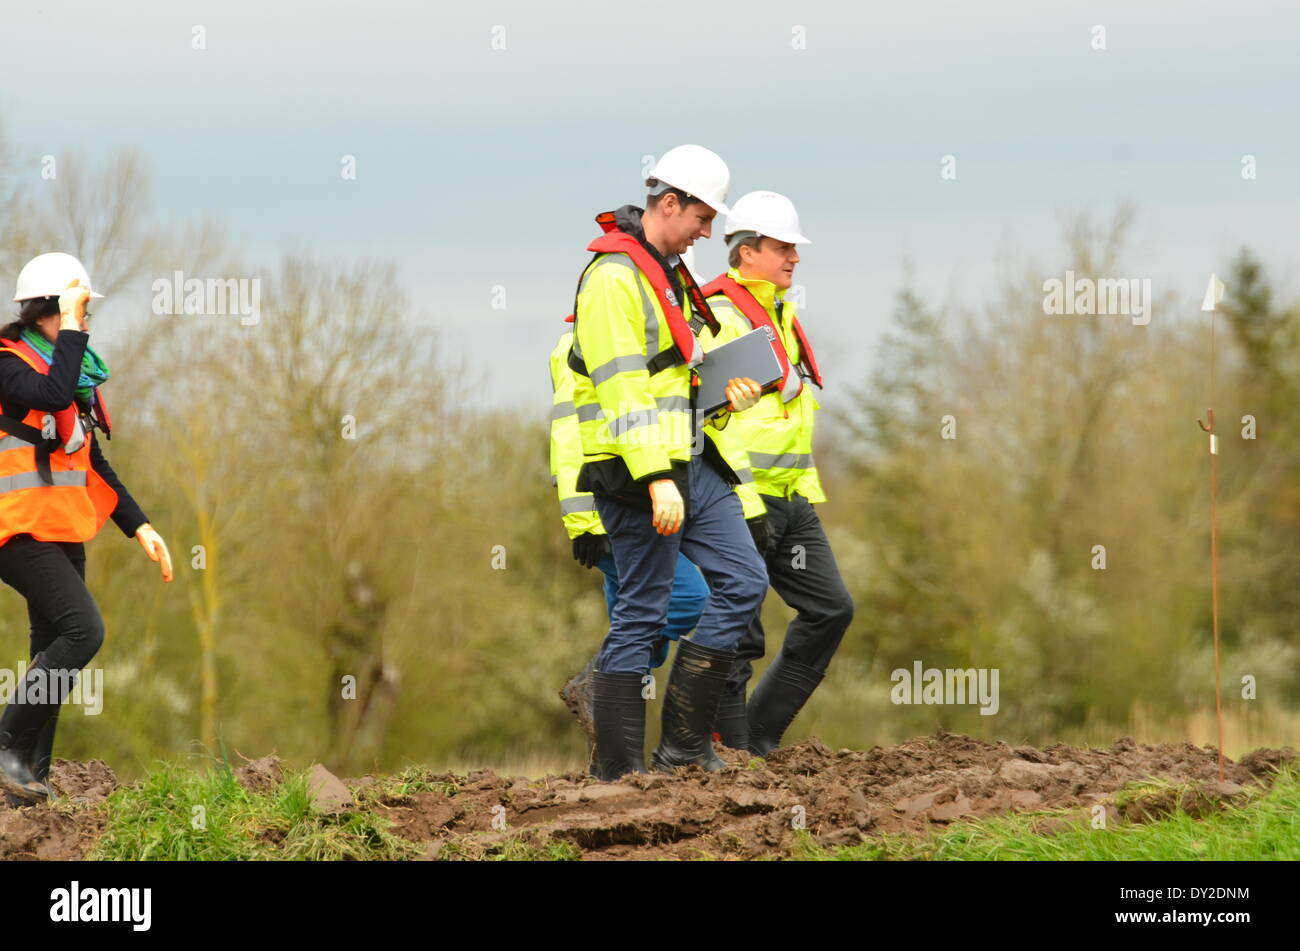 Burrowbridge, Somerset, UK . 04th Apr, 2014. Prime Minister David Cameron at the dredging site that is helping to clear the river Parrett at Burrowbridge in the UK. Credit:  Robert Timoney/Alamy Live News Stock Photo